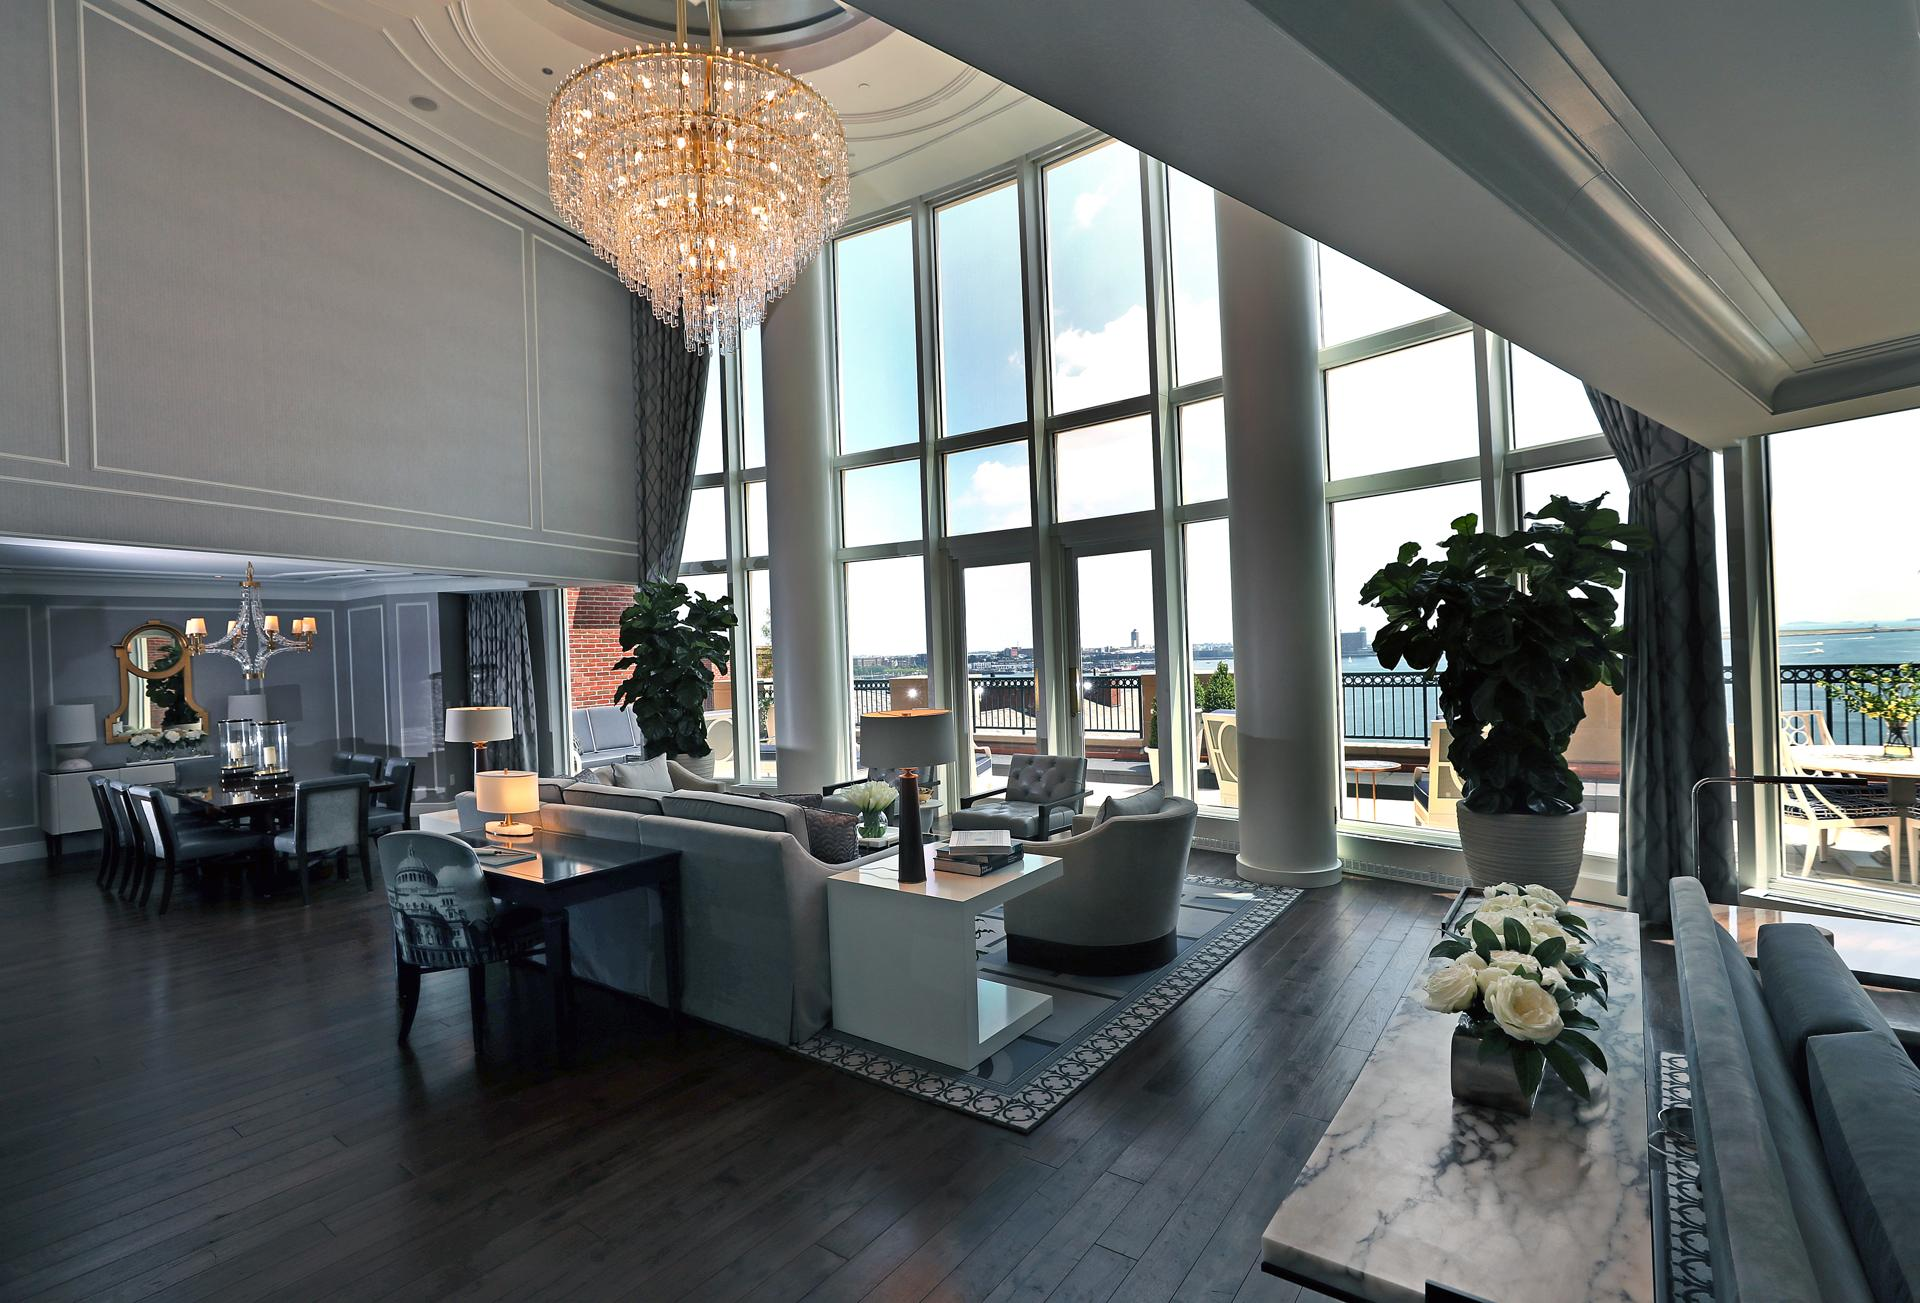 The main living area of the new, $15,000-a-night Presidential Suite at the Boston Harbor Hotel in Boston. This is now the most expensive hotel room in Boston.